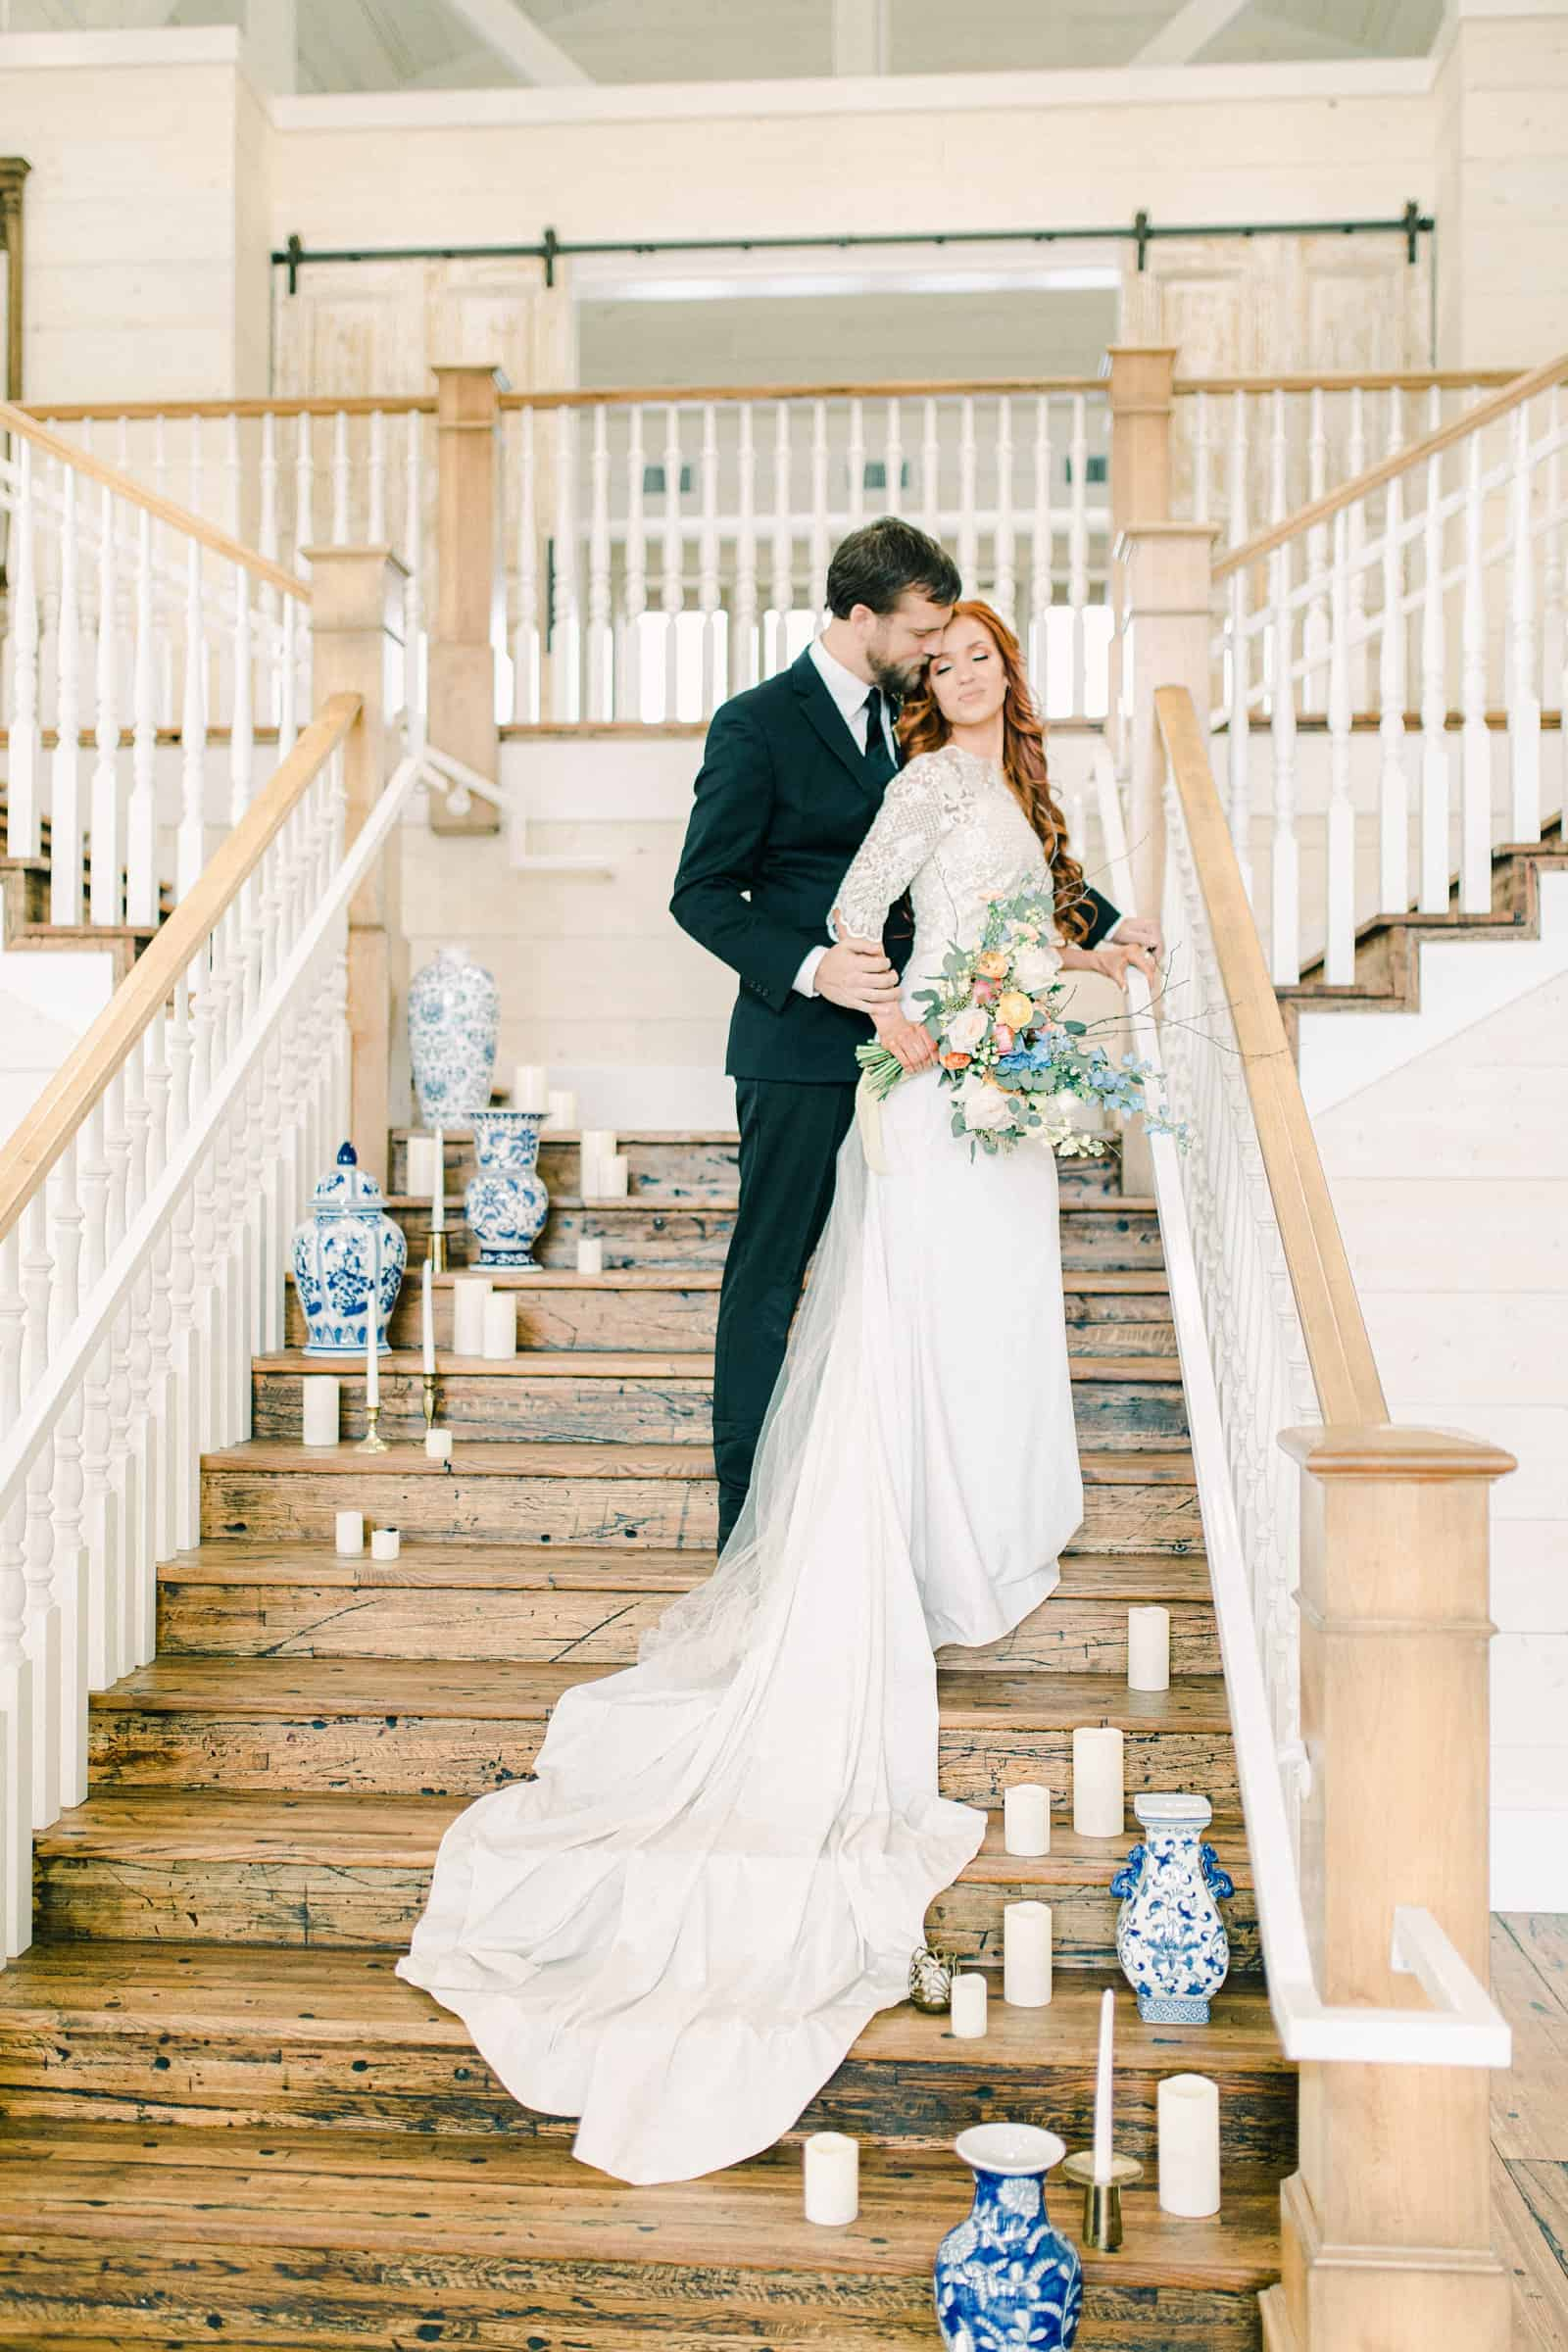 Bride and groom on staircase with vases and candles, Utah County wedding venue